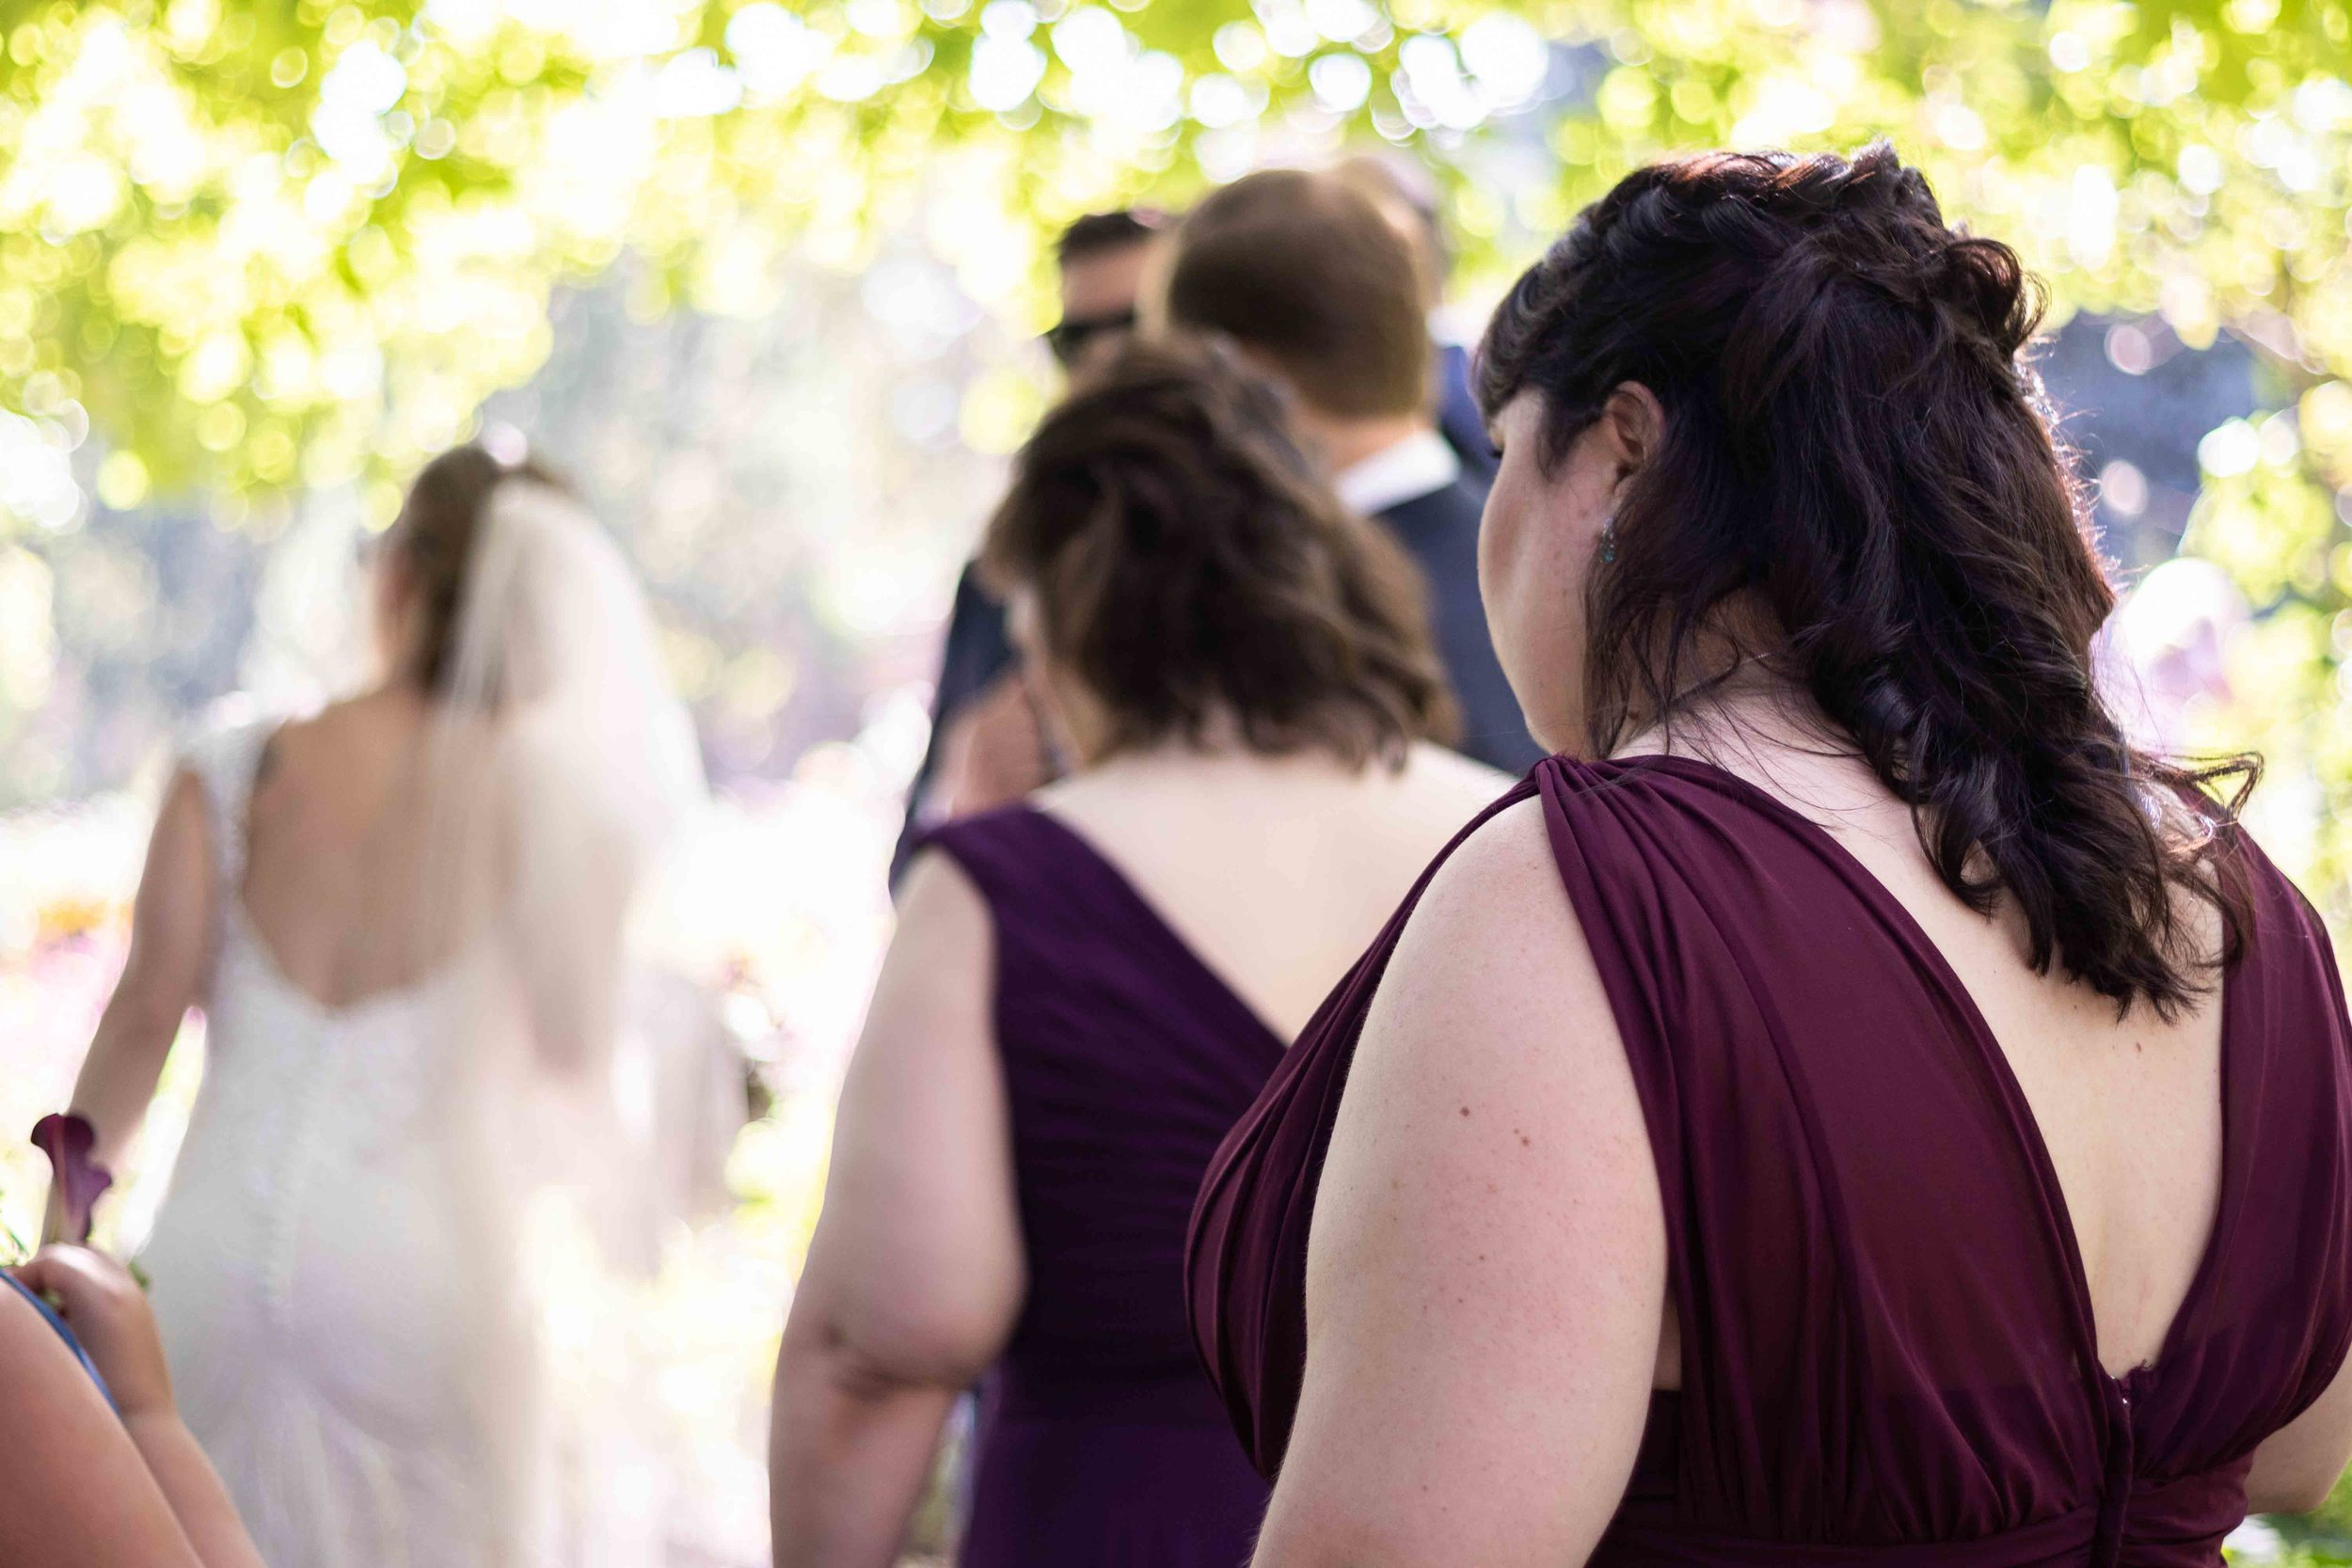 Bride and Bridesmaids at the Ceremony